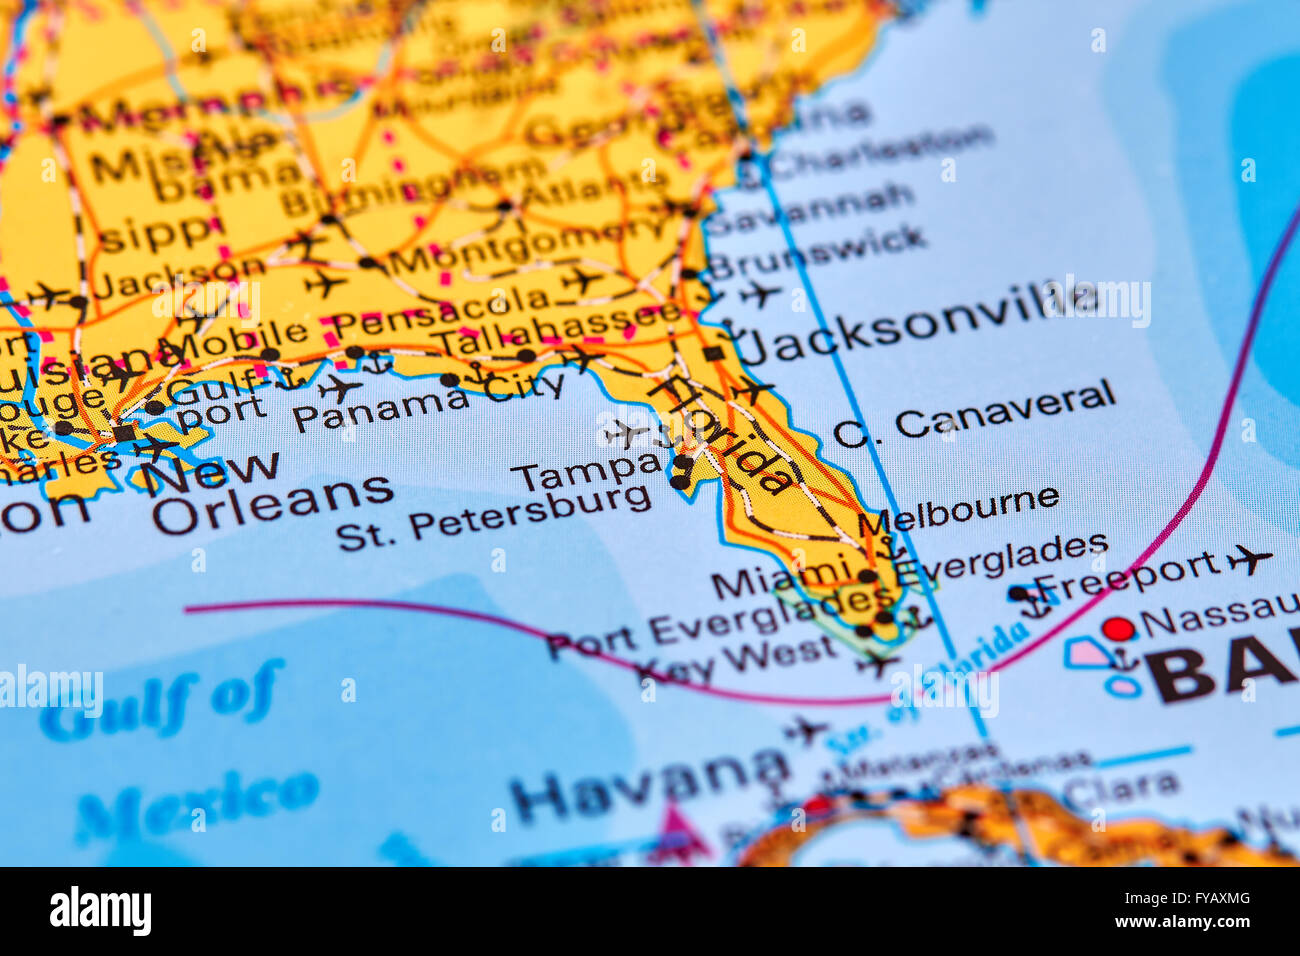 Flordia State Map.Florida State In Usa On The World Map Stock Photo 102888032 Alamy